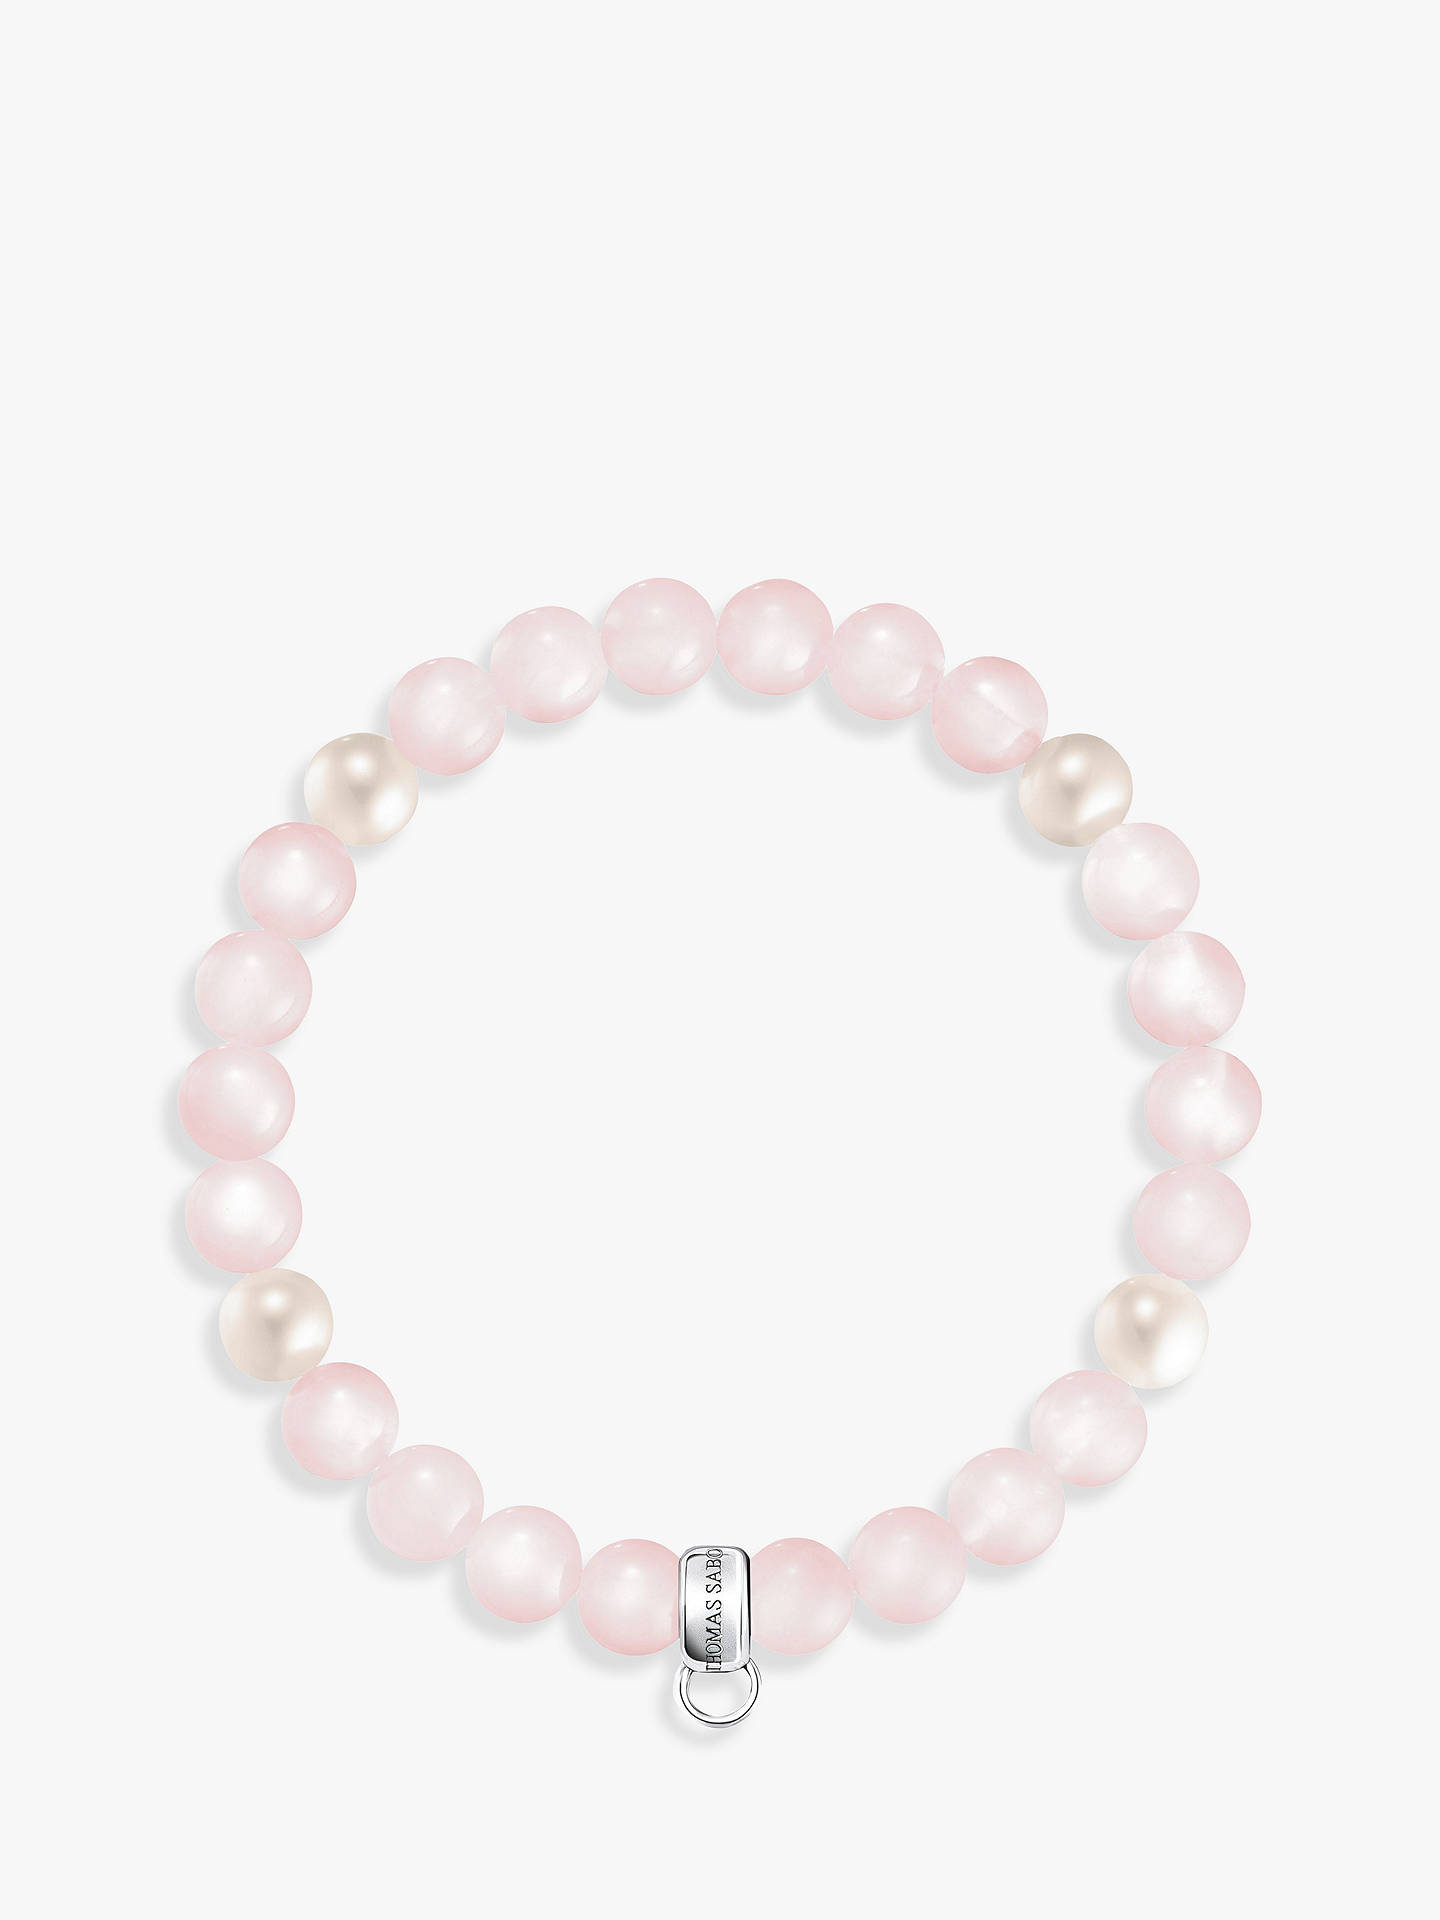 BuyTHOMAS SABO Rose Quartz and Freshwater Pearl Charm Bracelet, Blush/Cream Online at johnlewis.com